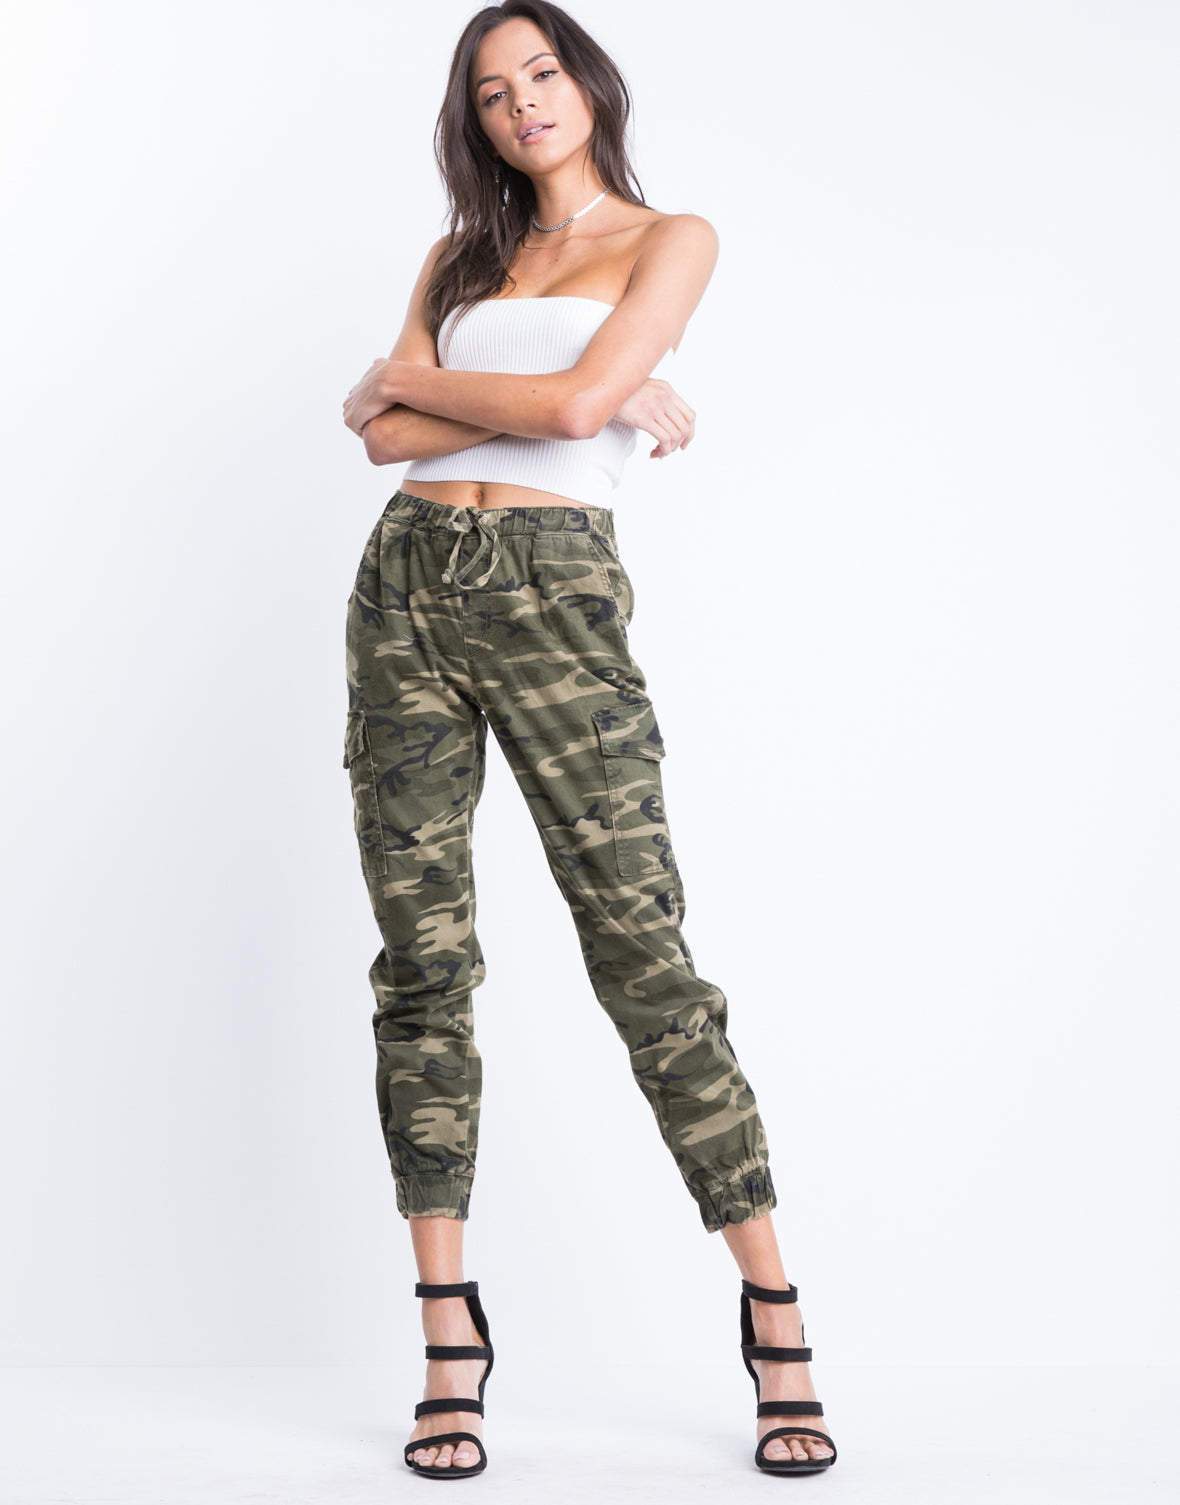 On The Frontlines Camo Pants 2020ave